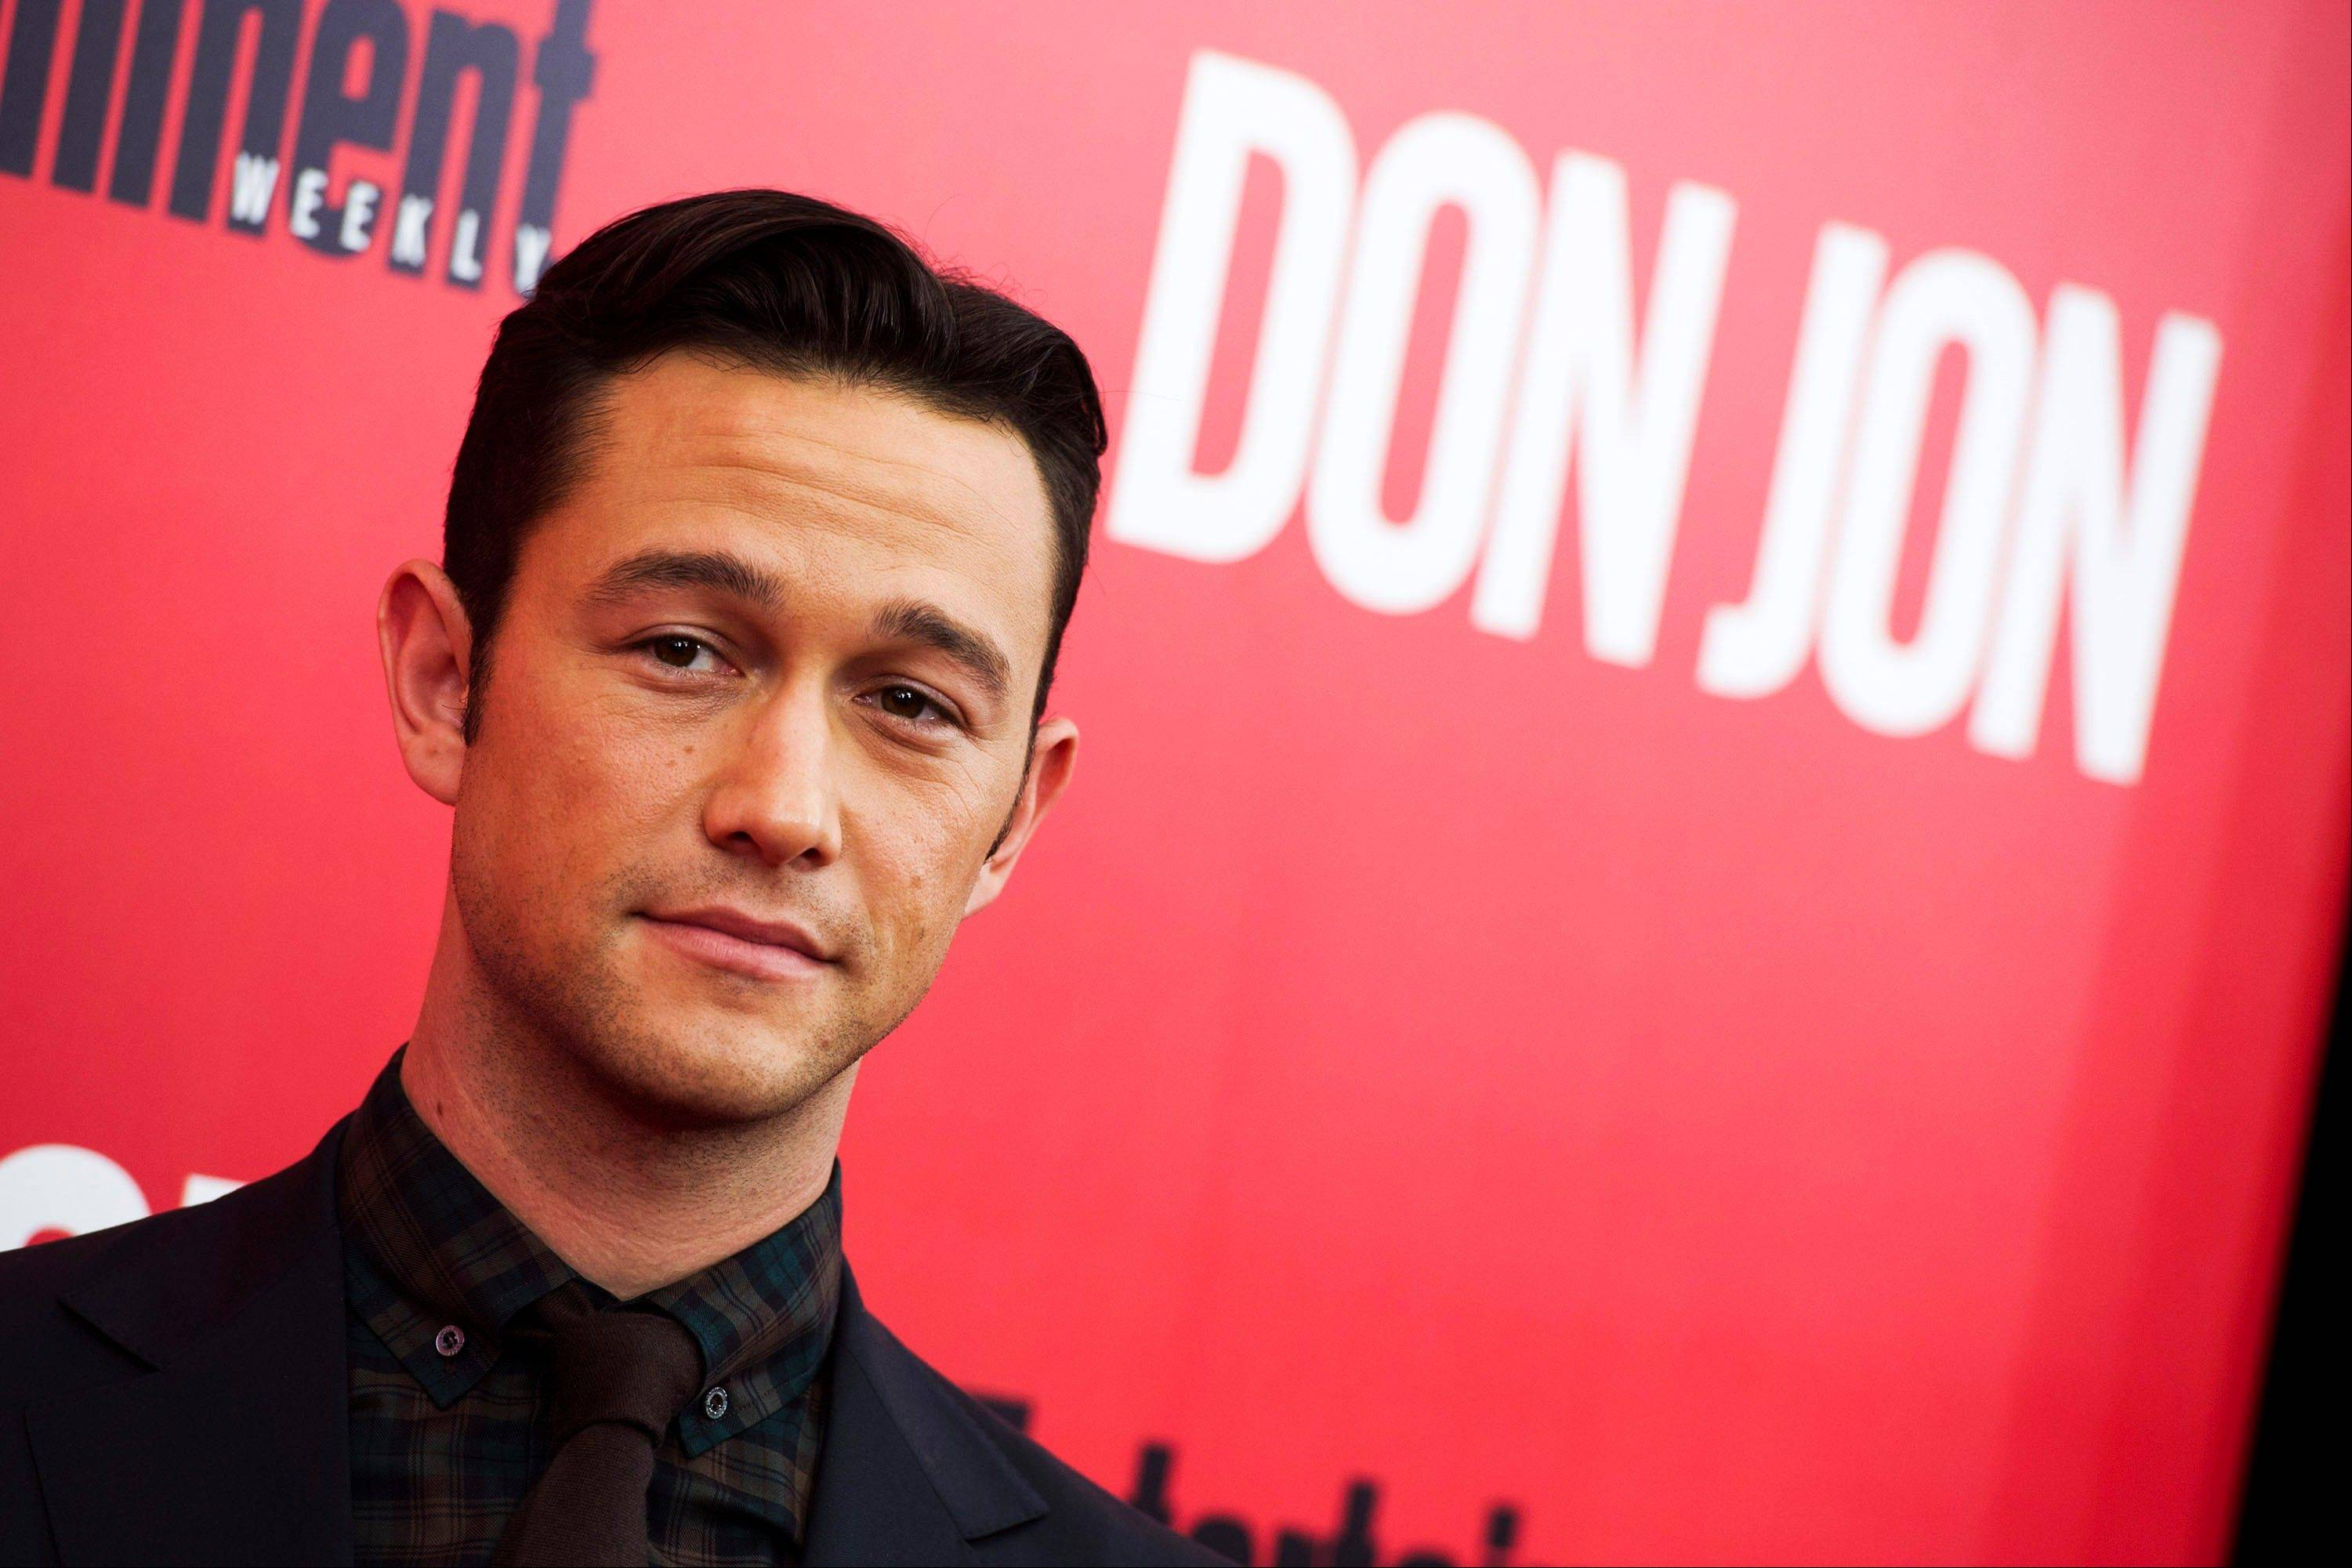 Joseph Gordon-Levitt attends the �Don Jon� premiere in New York. Gordon-Levitt wrote and directed the film, which opened nationwide Friday.